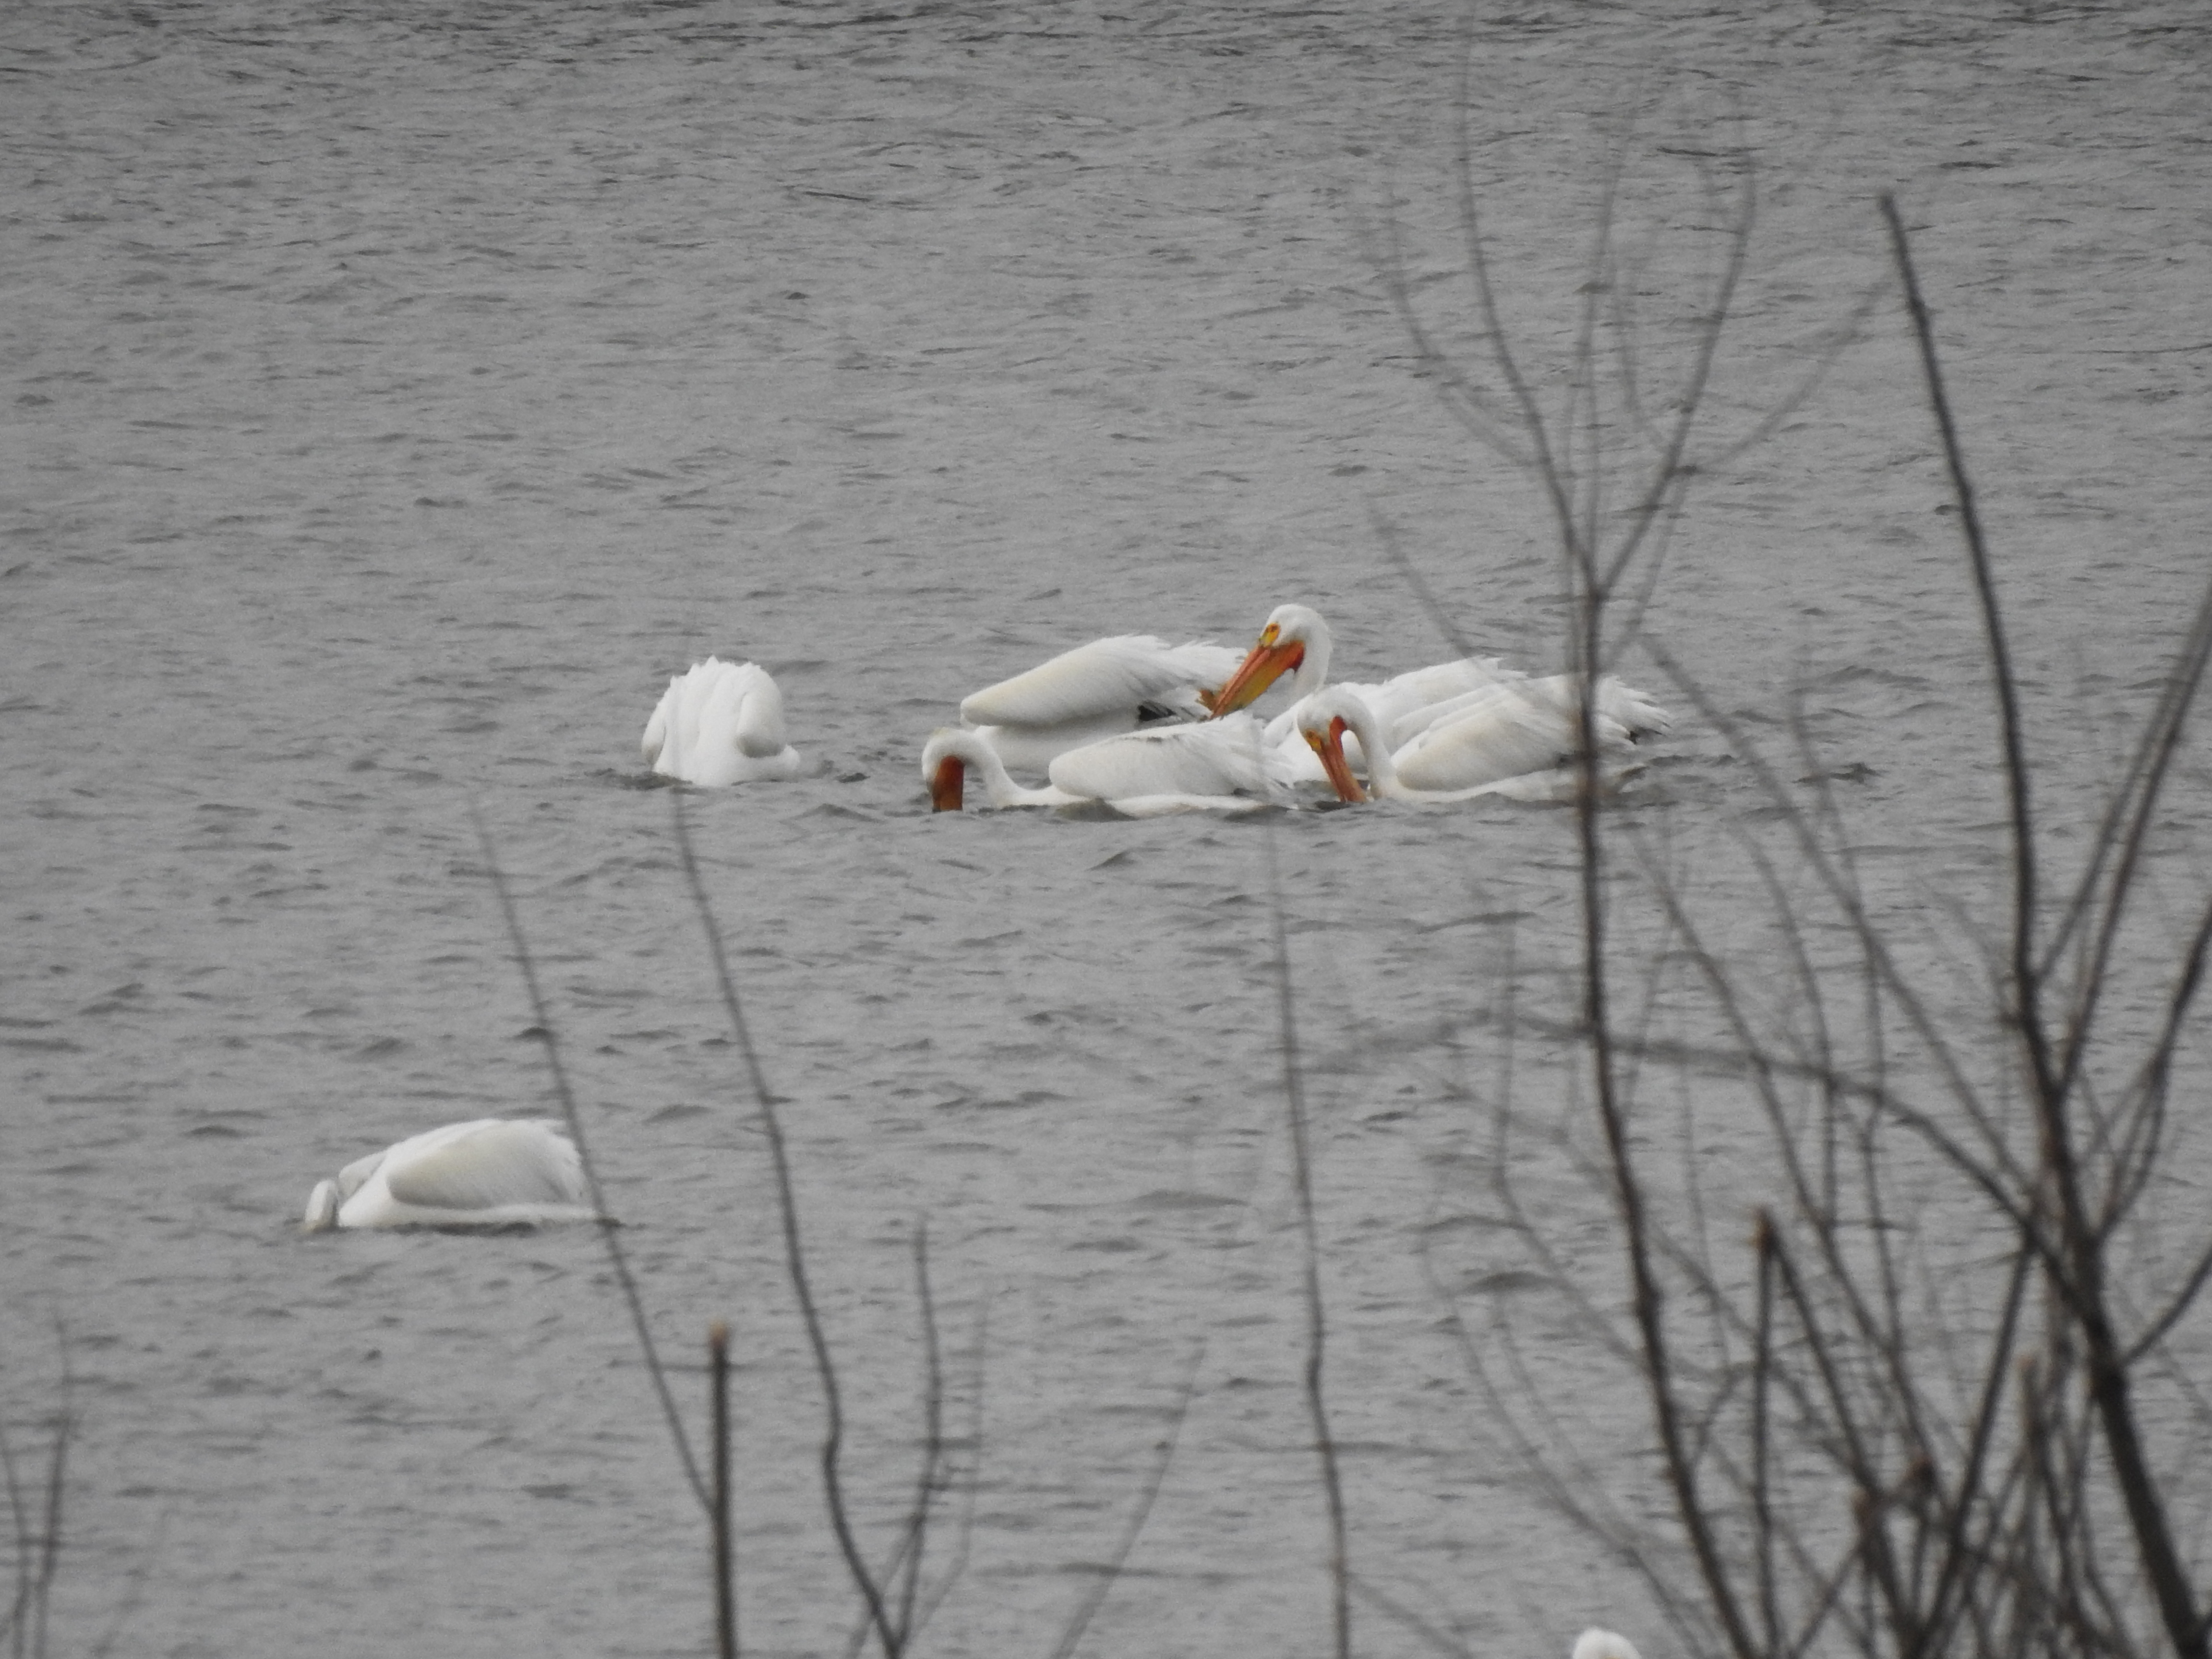 (2/2) Pelicans swim on Lake Law. nature, wildlife, animal, bird, pelican, water, lake Photo: Ed Dijak